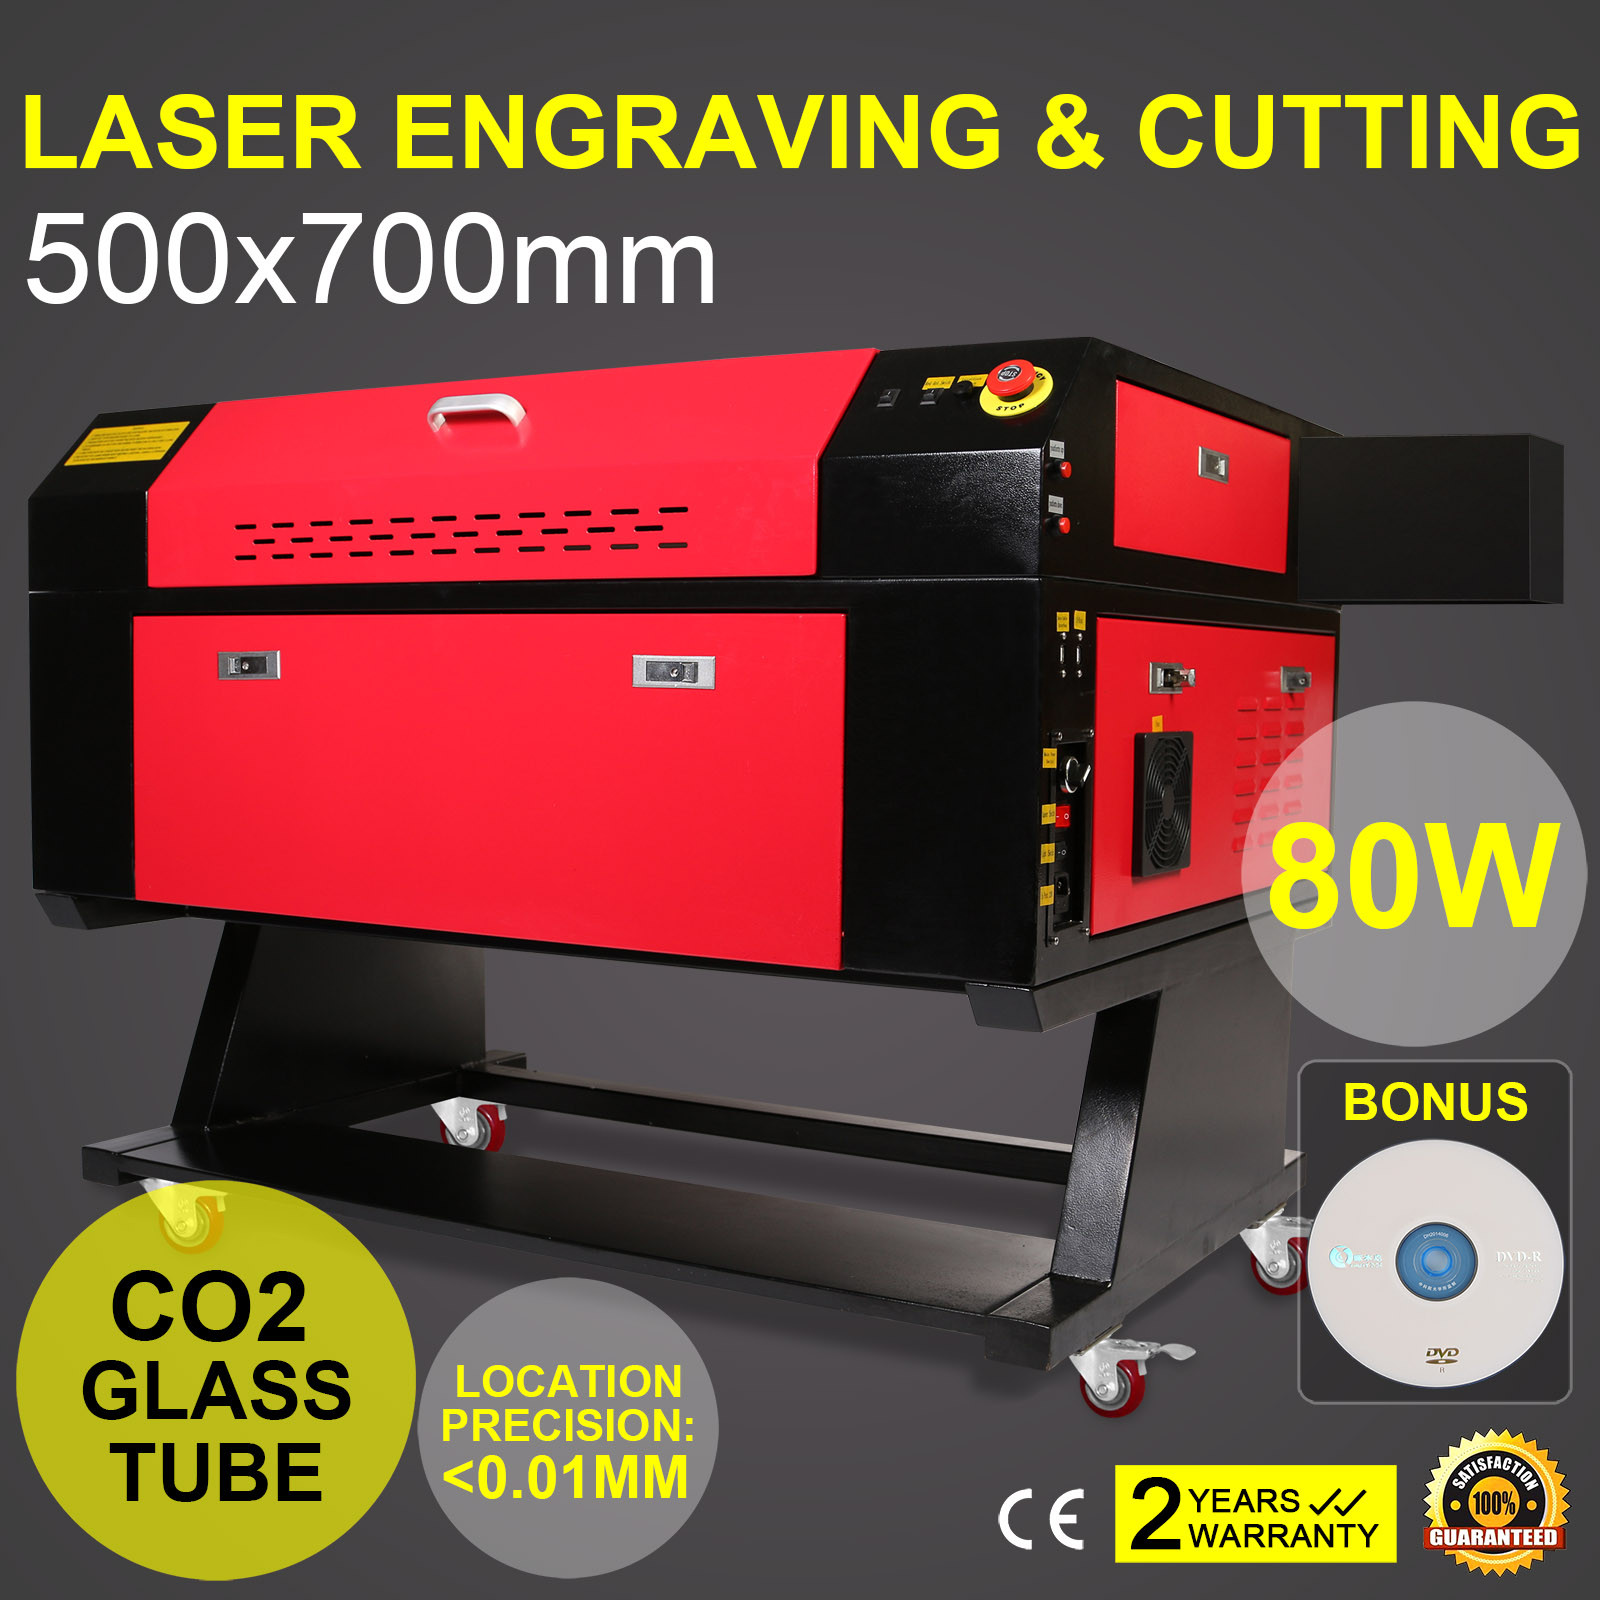 Mini Co2 Laser Engraving Machine Multiple Usage 7050 Engraver Machine DSP Control System